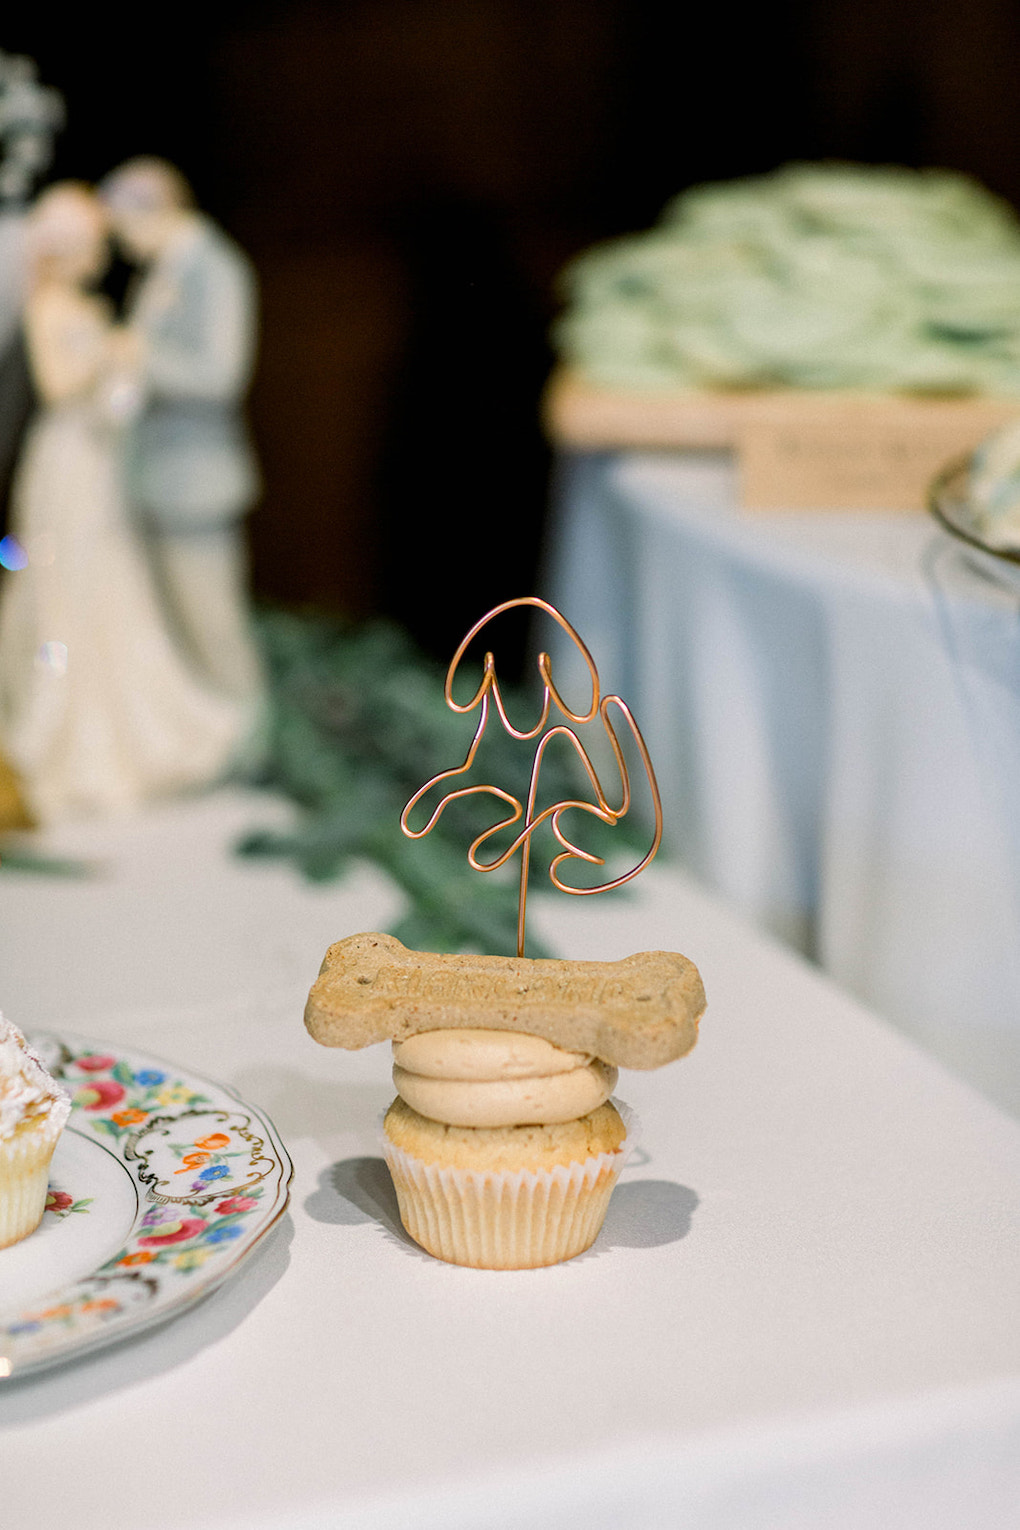 Ways to incorporate your dog on your wedding day: Pittsburgh Botanic Garden wedding planned by Exhale Events. See more wedding inspiration at exhale-events.com!